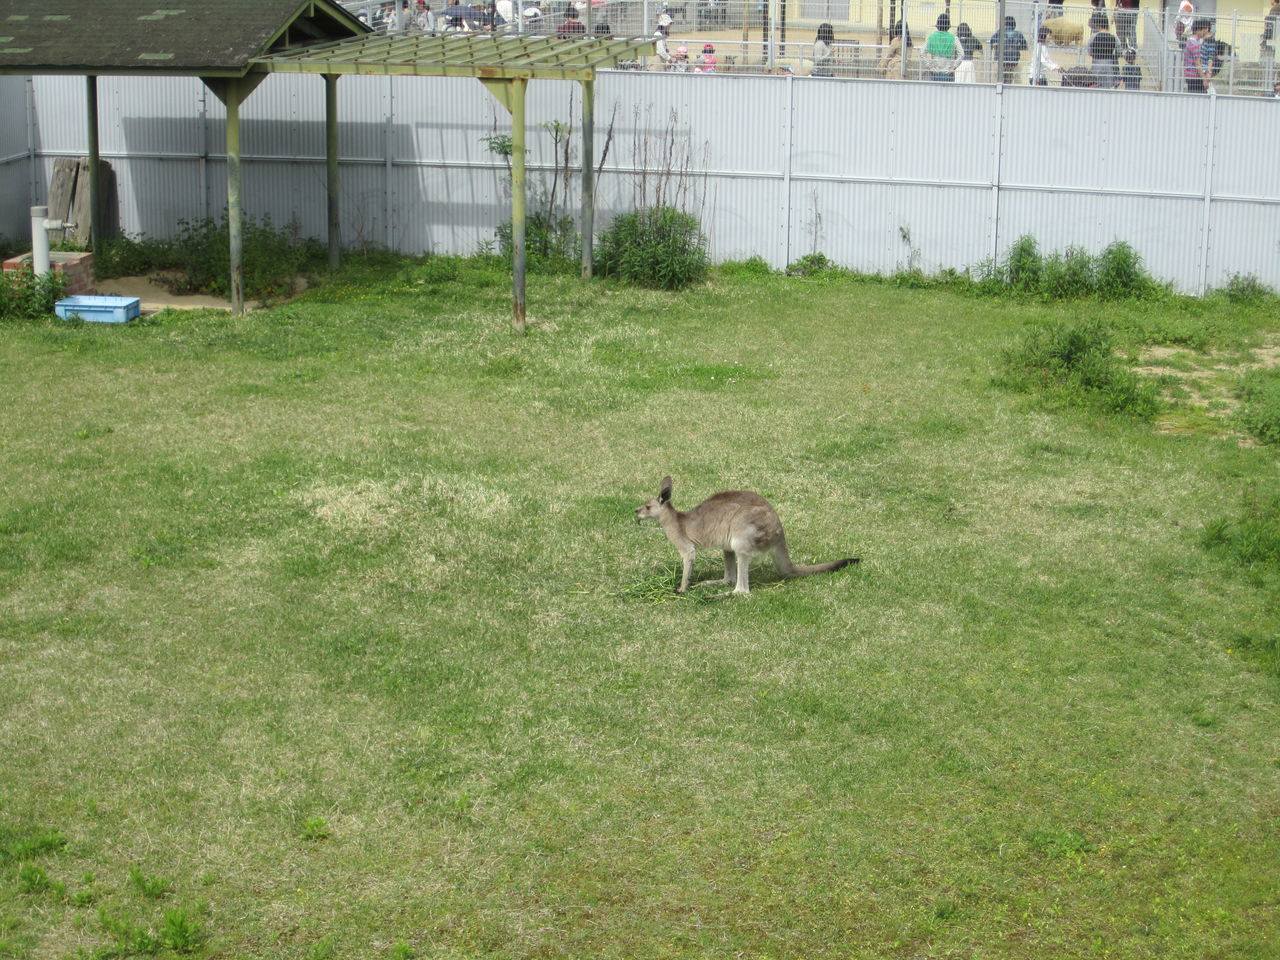 grass, mammal, animal themes, nature, one animal, no people, day, young animal, outdoors, dog, domestic animals